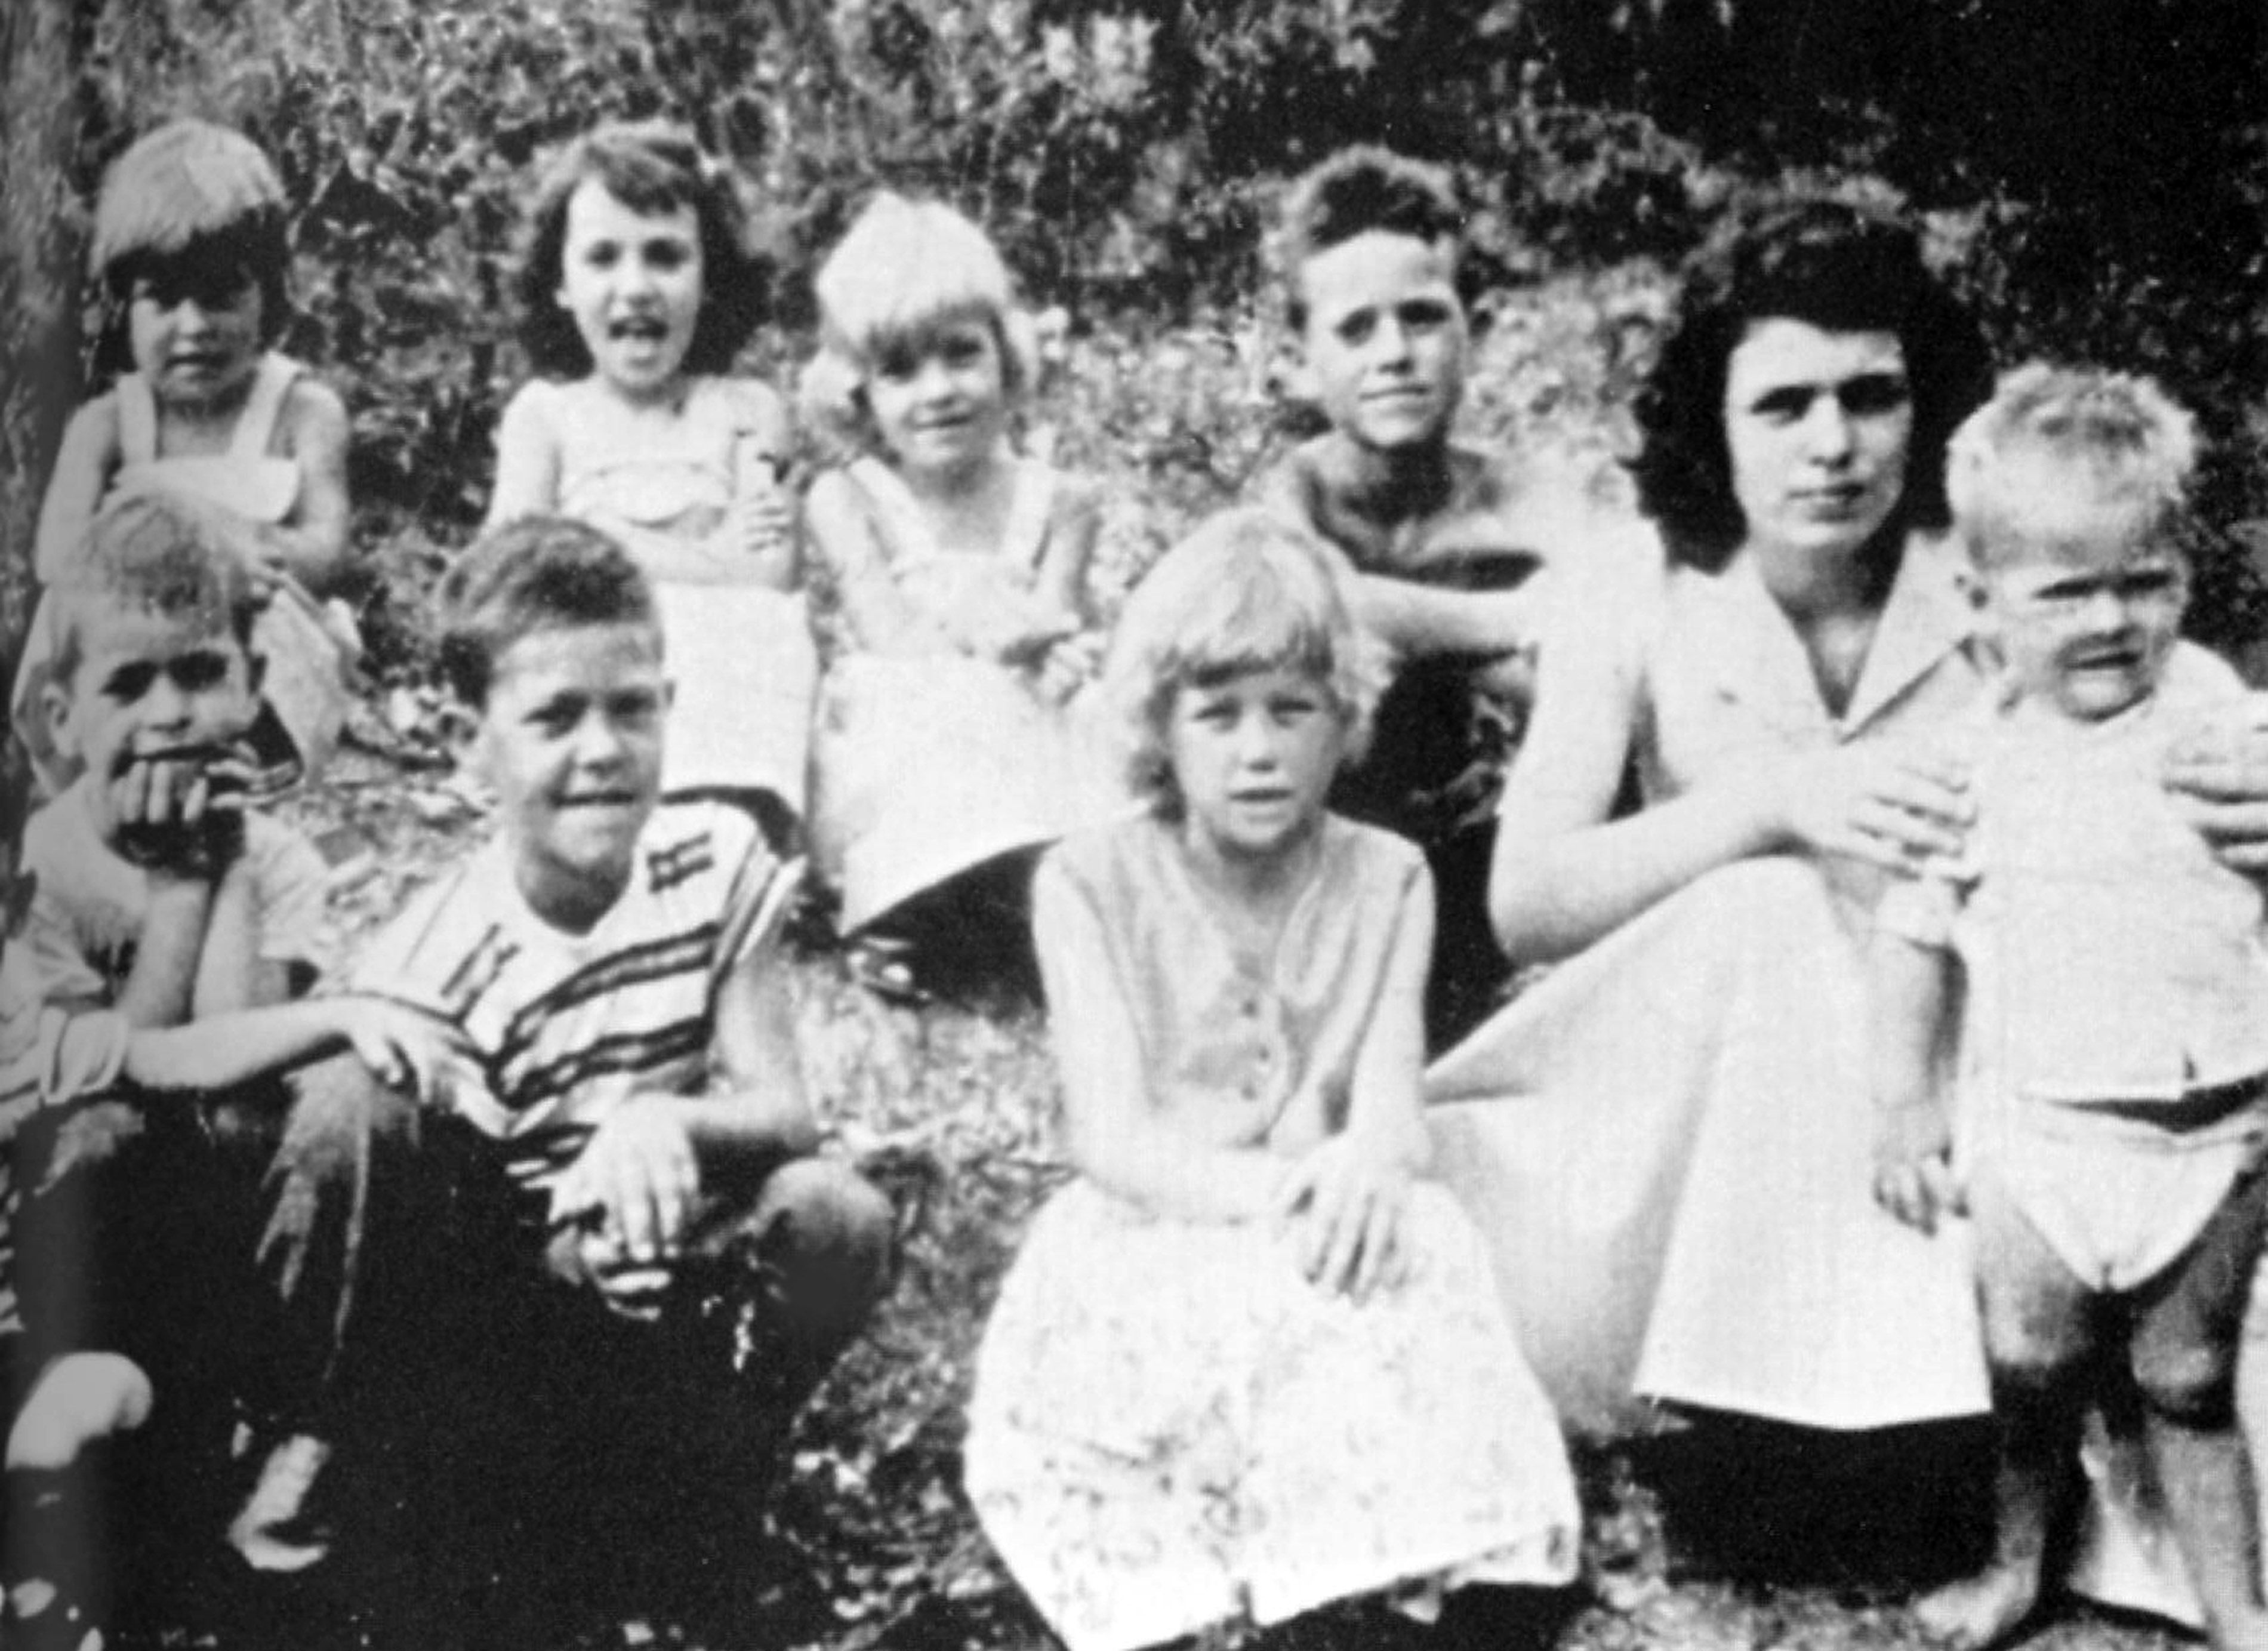 Dolly Parton's Siblings - How Many Siblings Does Dolly